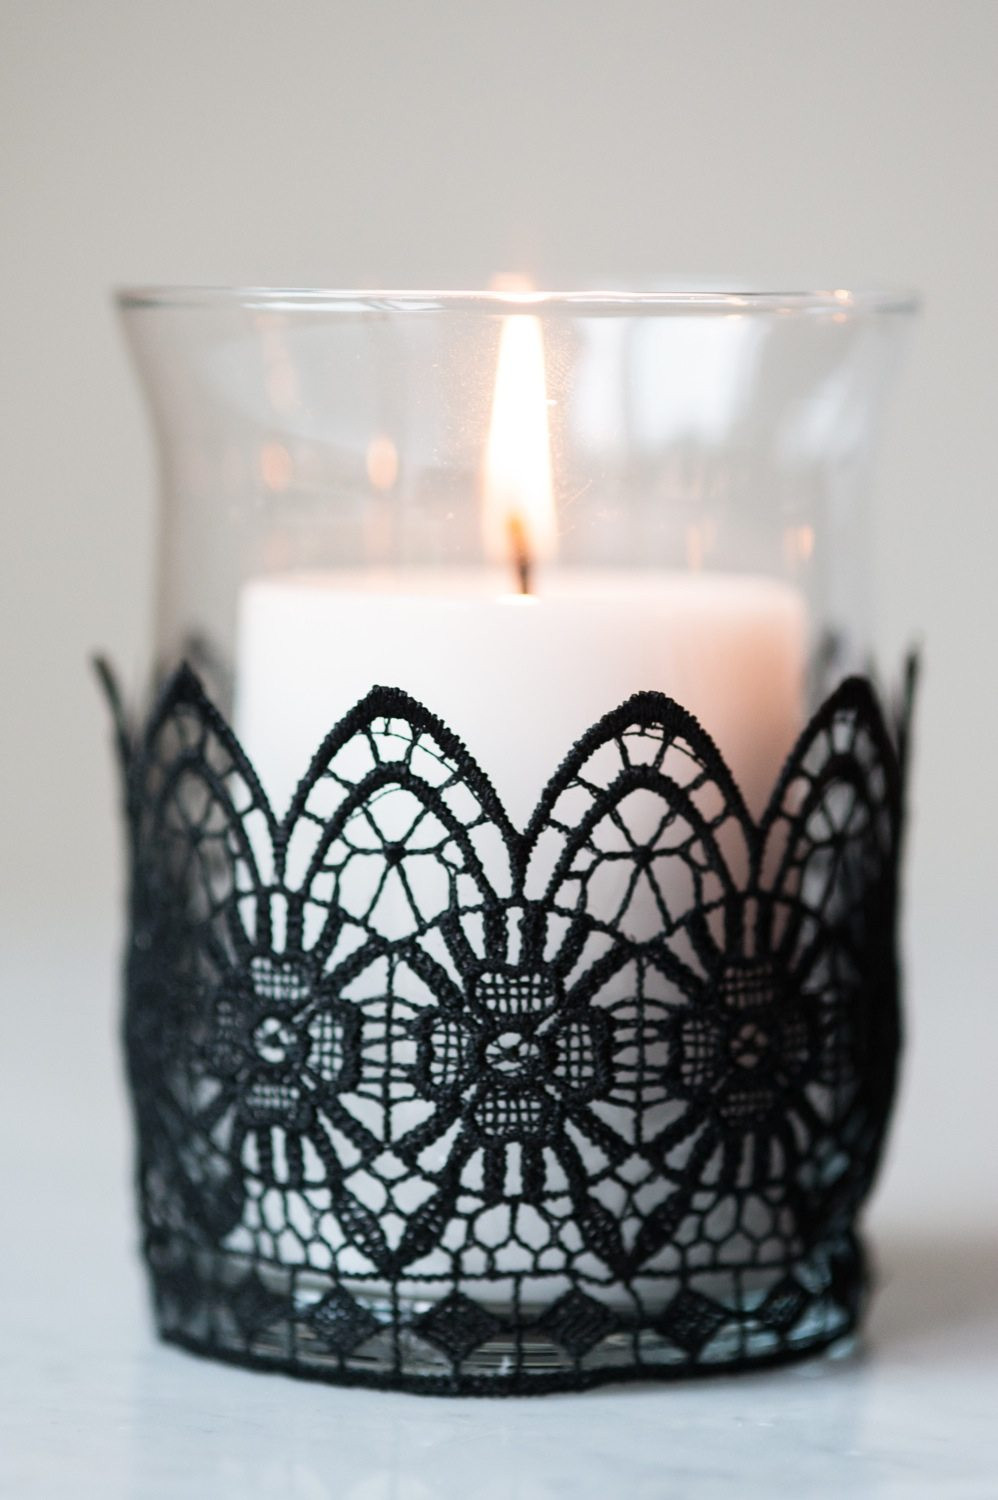 Best ideas about DIY Candle Holders . Save or Pin DIY Black Lace Candle Holders The Sweetest Occasion Now.